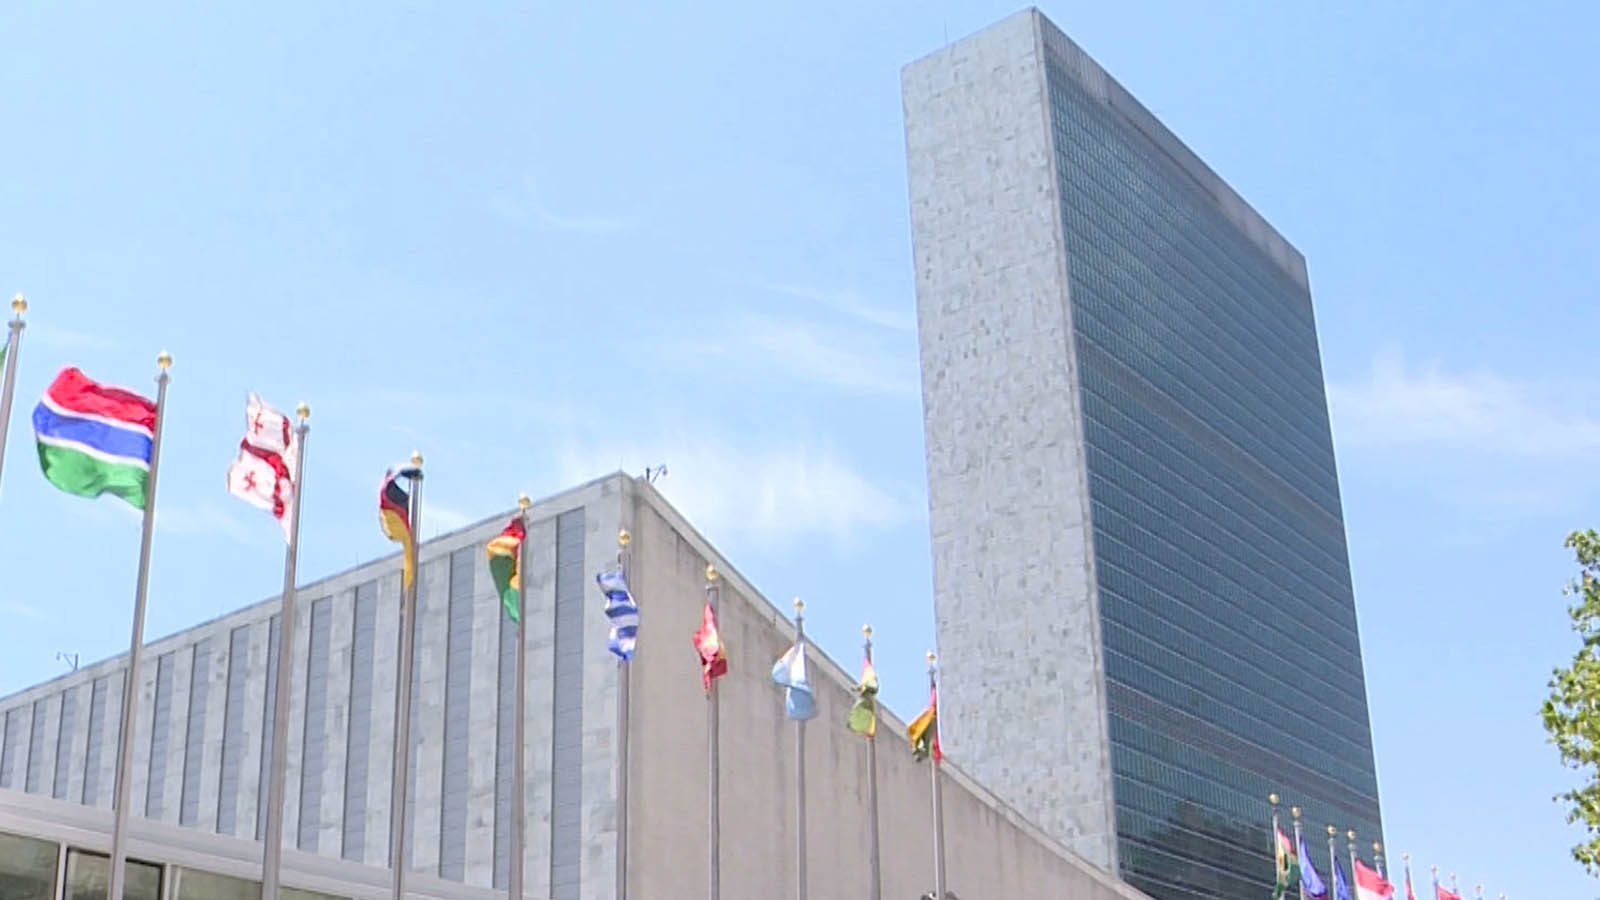 Annual Global South-South Development Expo to be held at UN New York headquarters